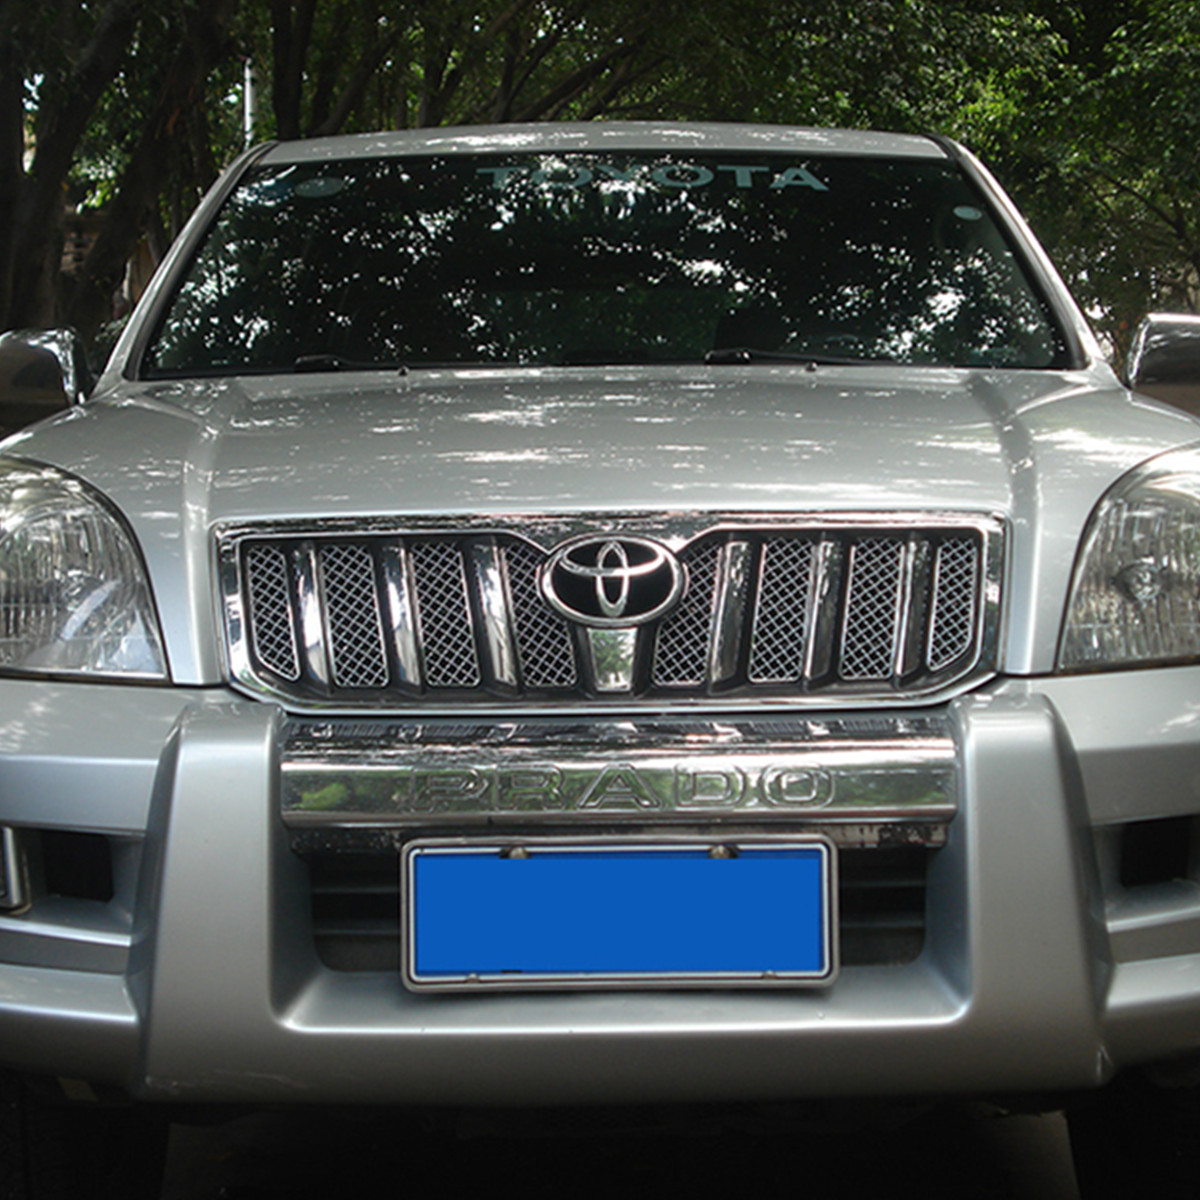 Stainless Steel Front Meshes for <font><b>Toyota</b></font> <font><b>Land</b></font> <font><b>Cruiser</b></font> <font><b>Prado</b></font> <font><b>120</b></font> <font><b>2003</b></font> 2004 2005 2006 2007 2008 <font><b>2009</b></font> Accessories image